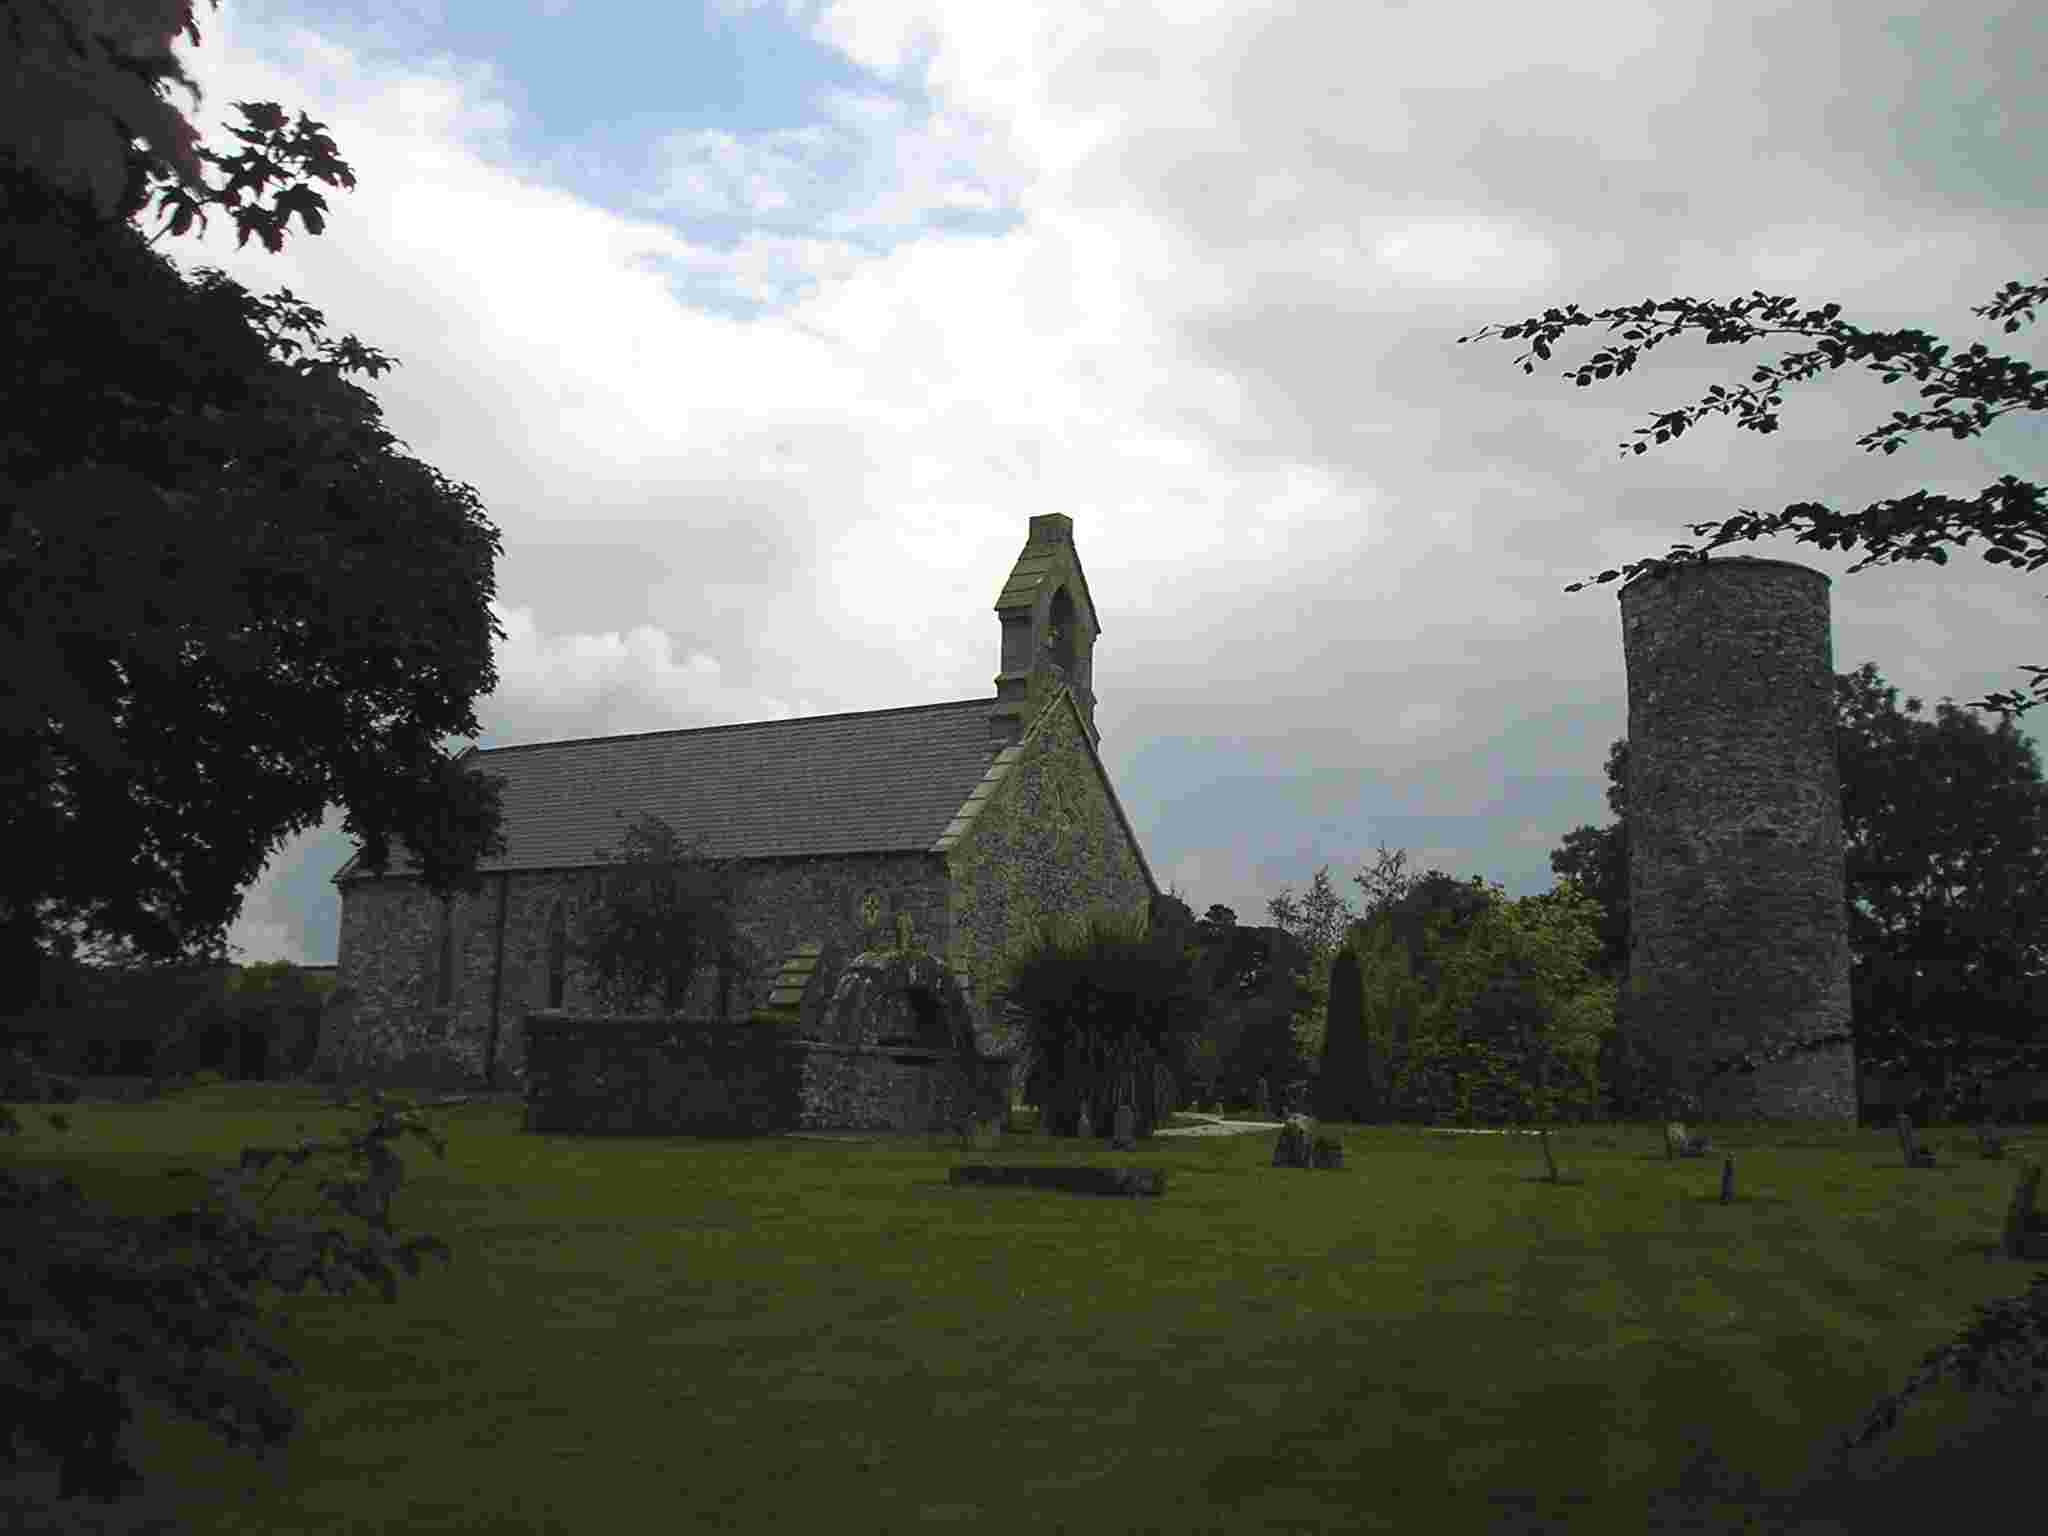 Inniskeen Church and Tower